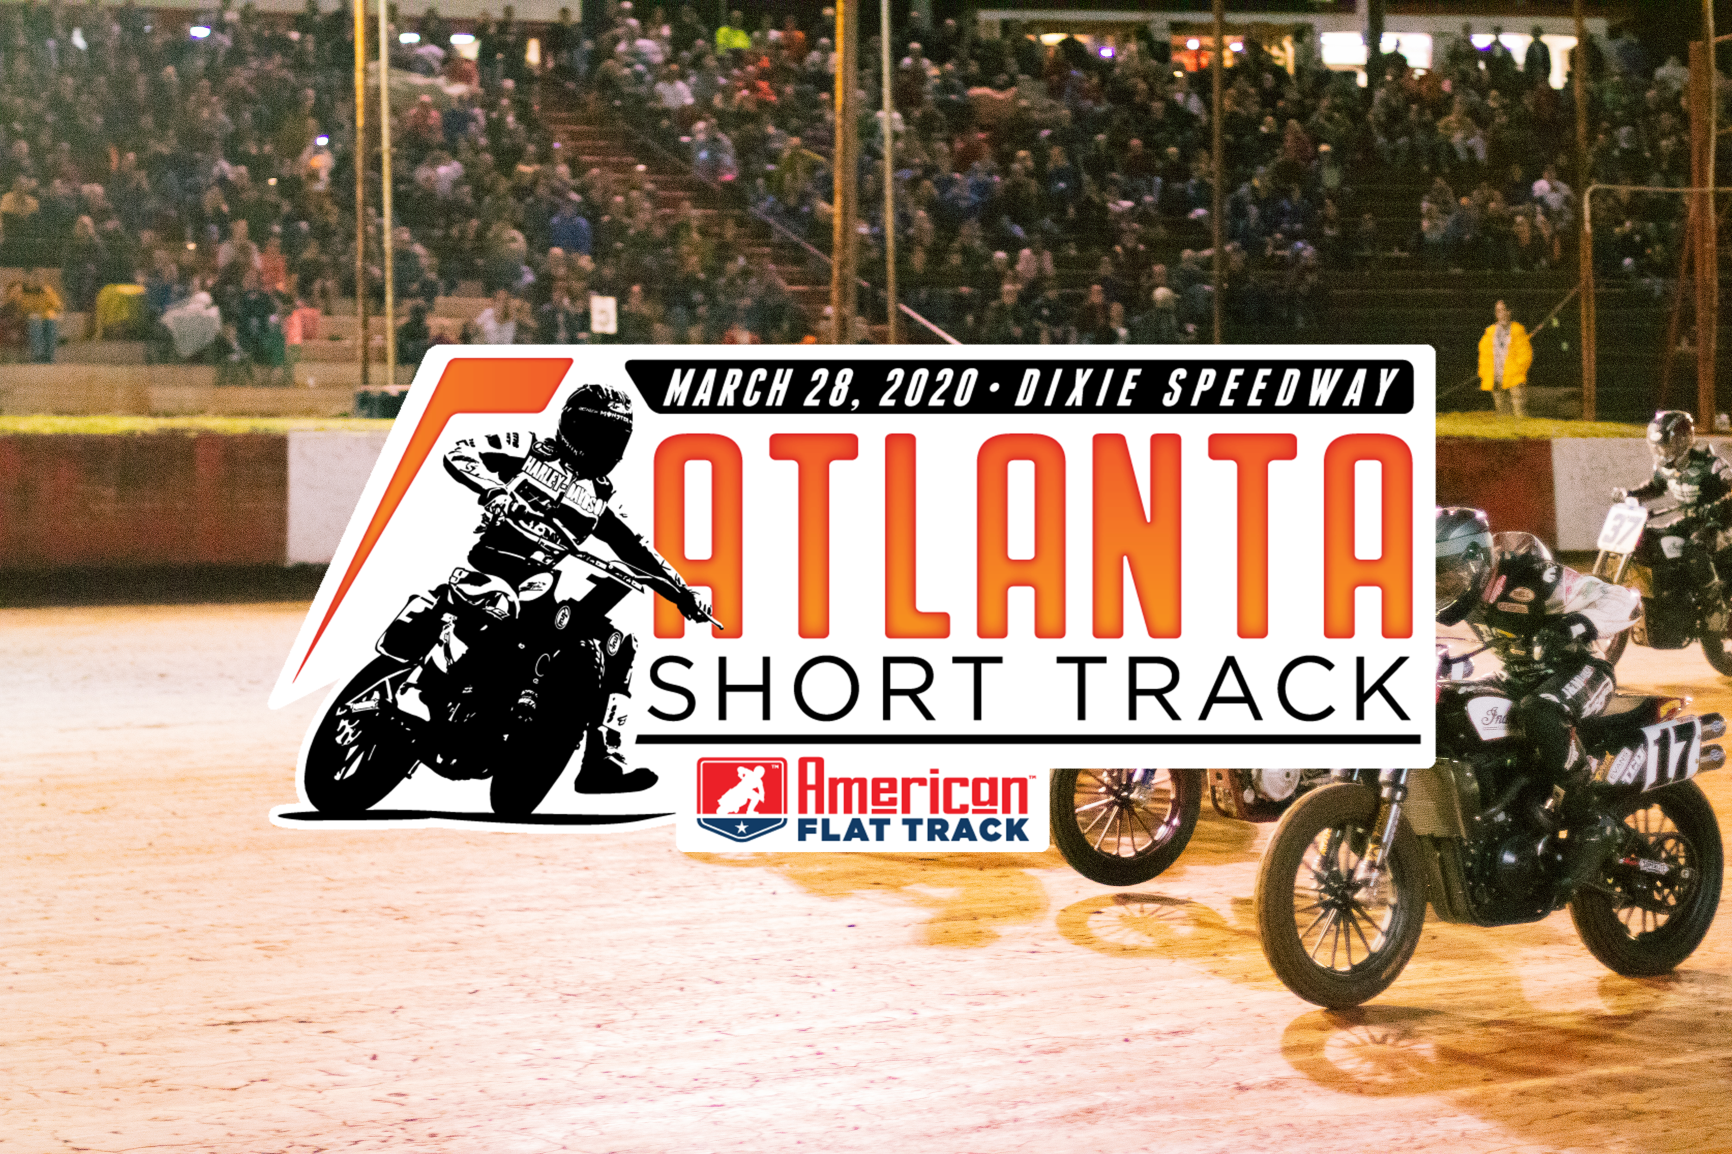 American Flat Track Returns to Dixie Speedway in 2020